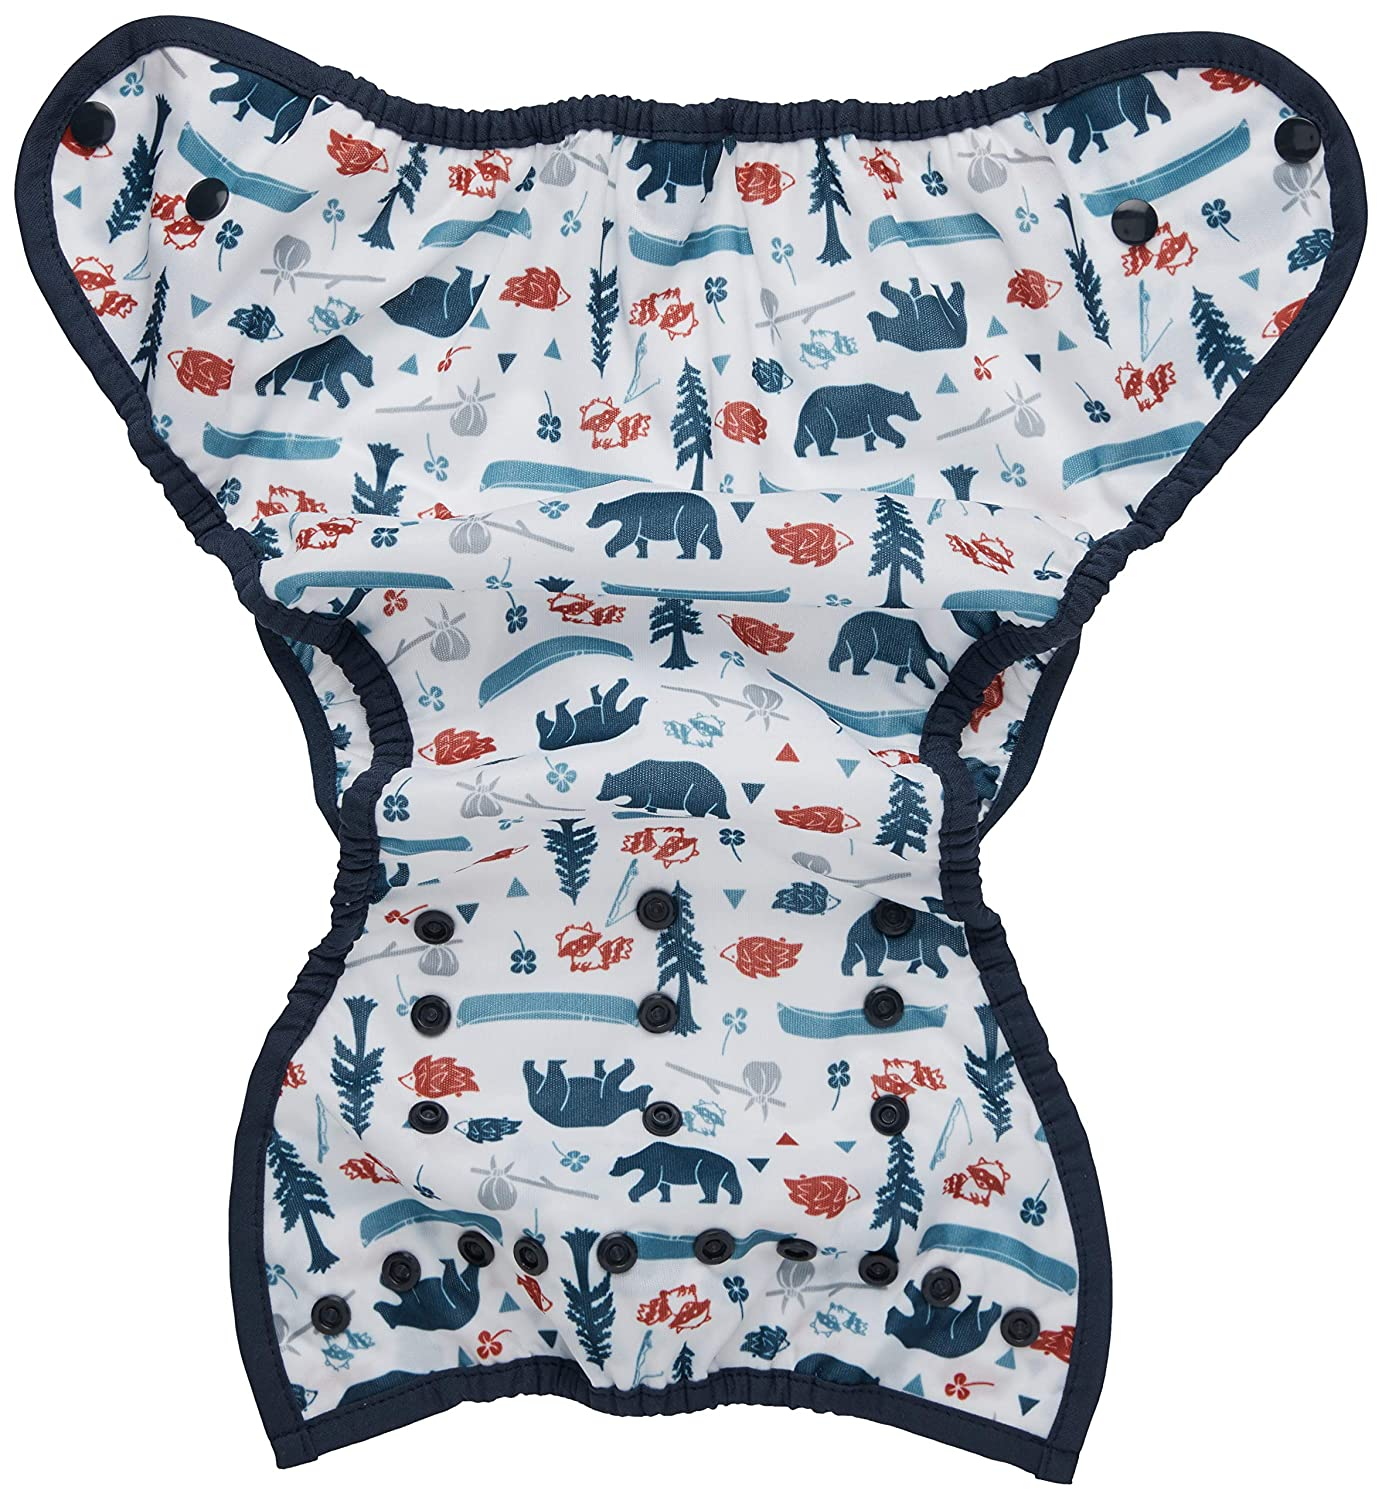 Aqua Thirsties Duo Wrap Snap Diaper Cover Size 1